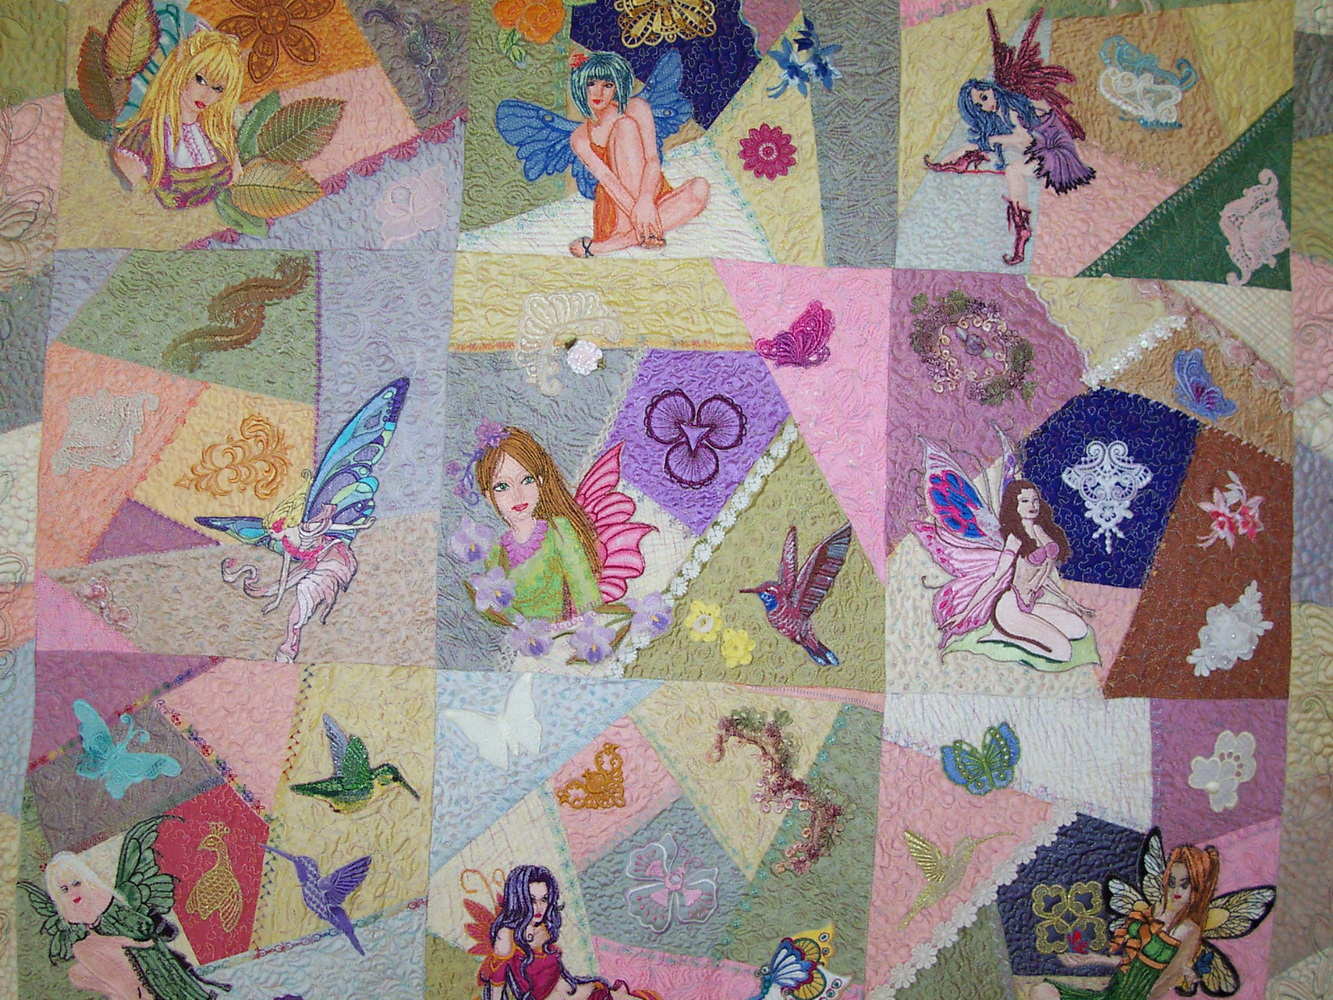 Fairies designs on quilt embroidered